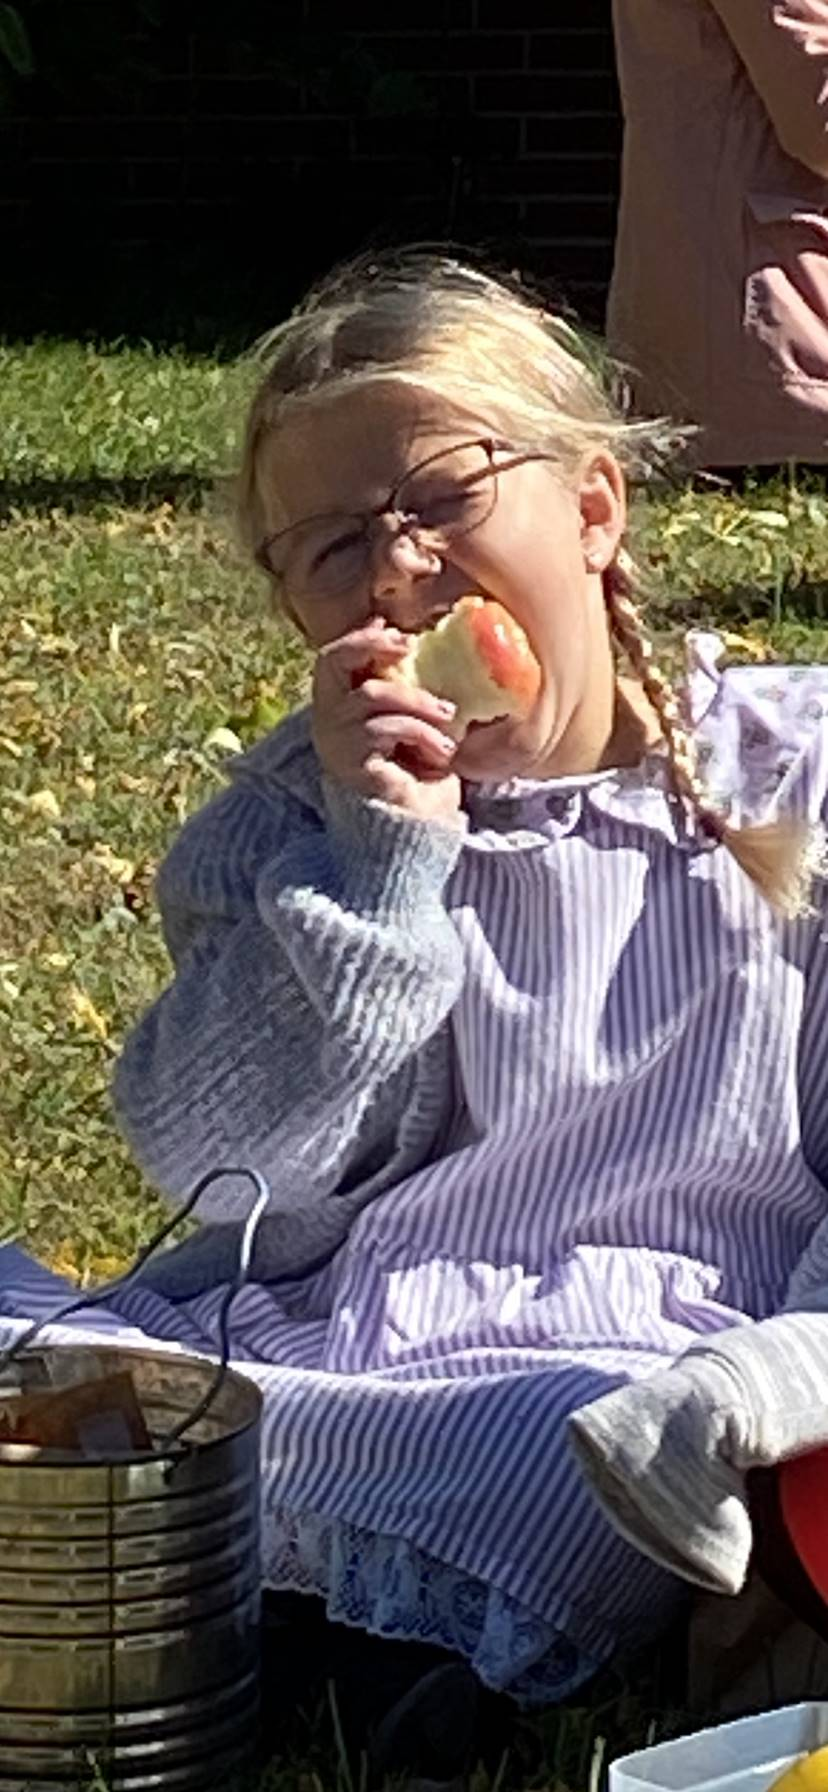 Second grade girl dressed as a pioneer outside eating an apple